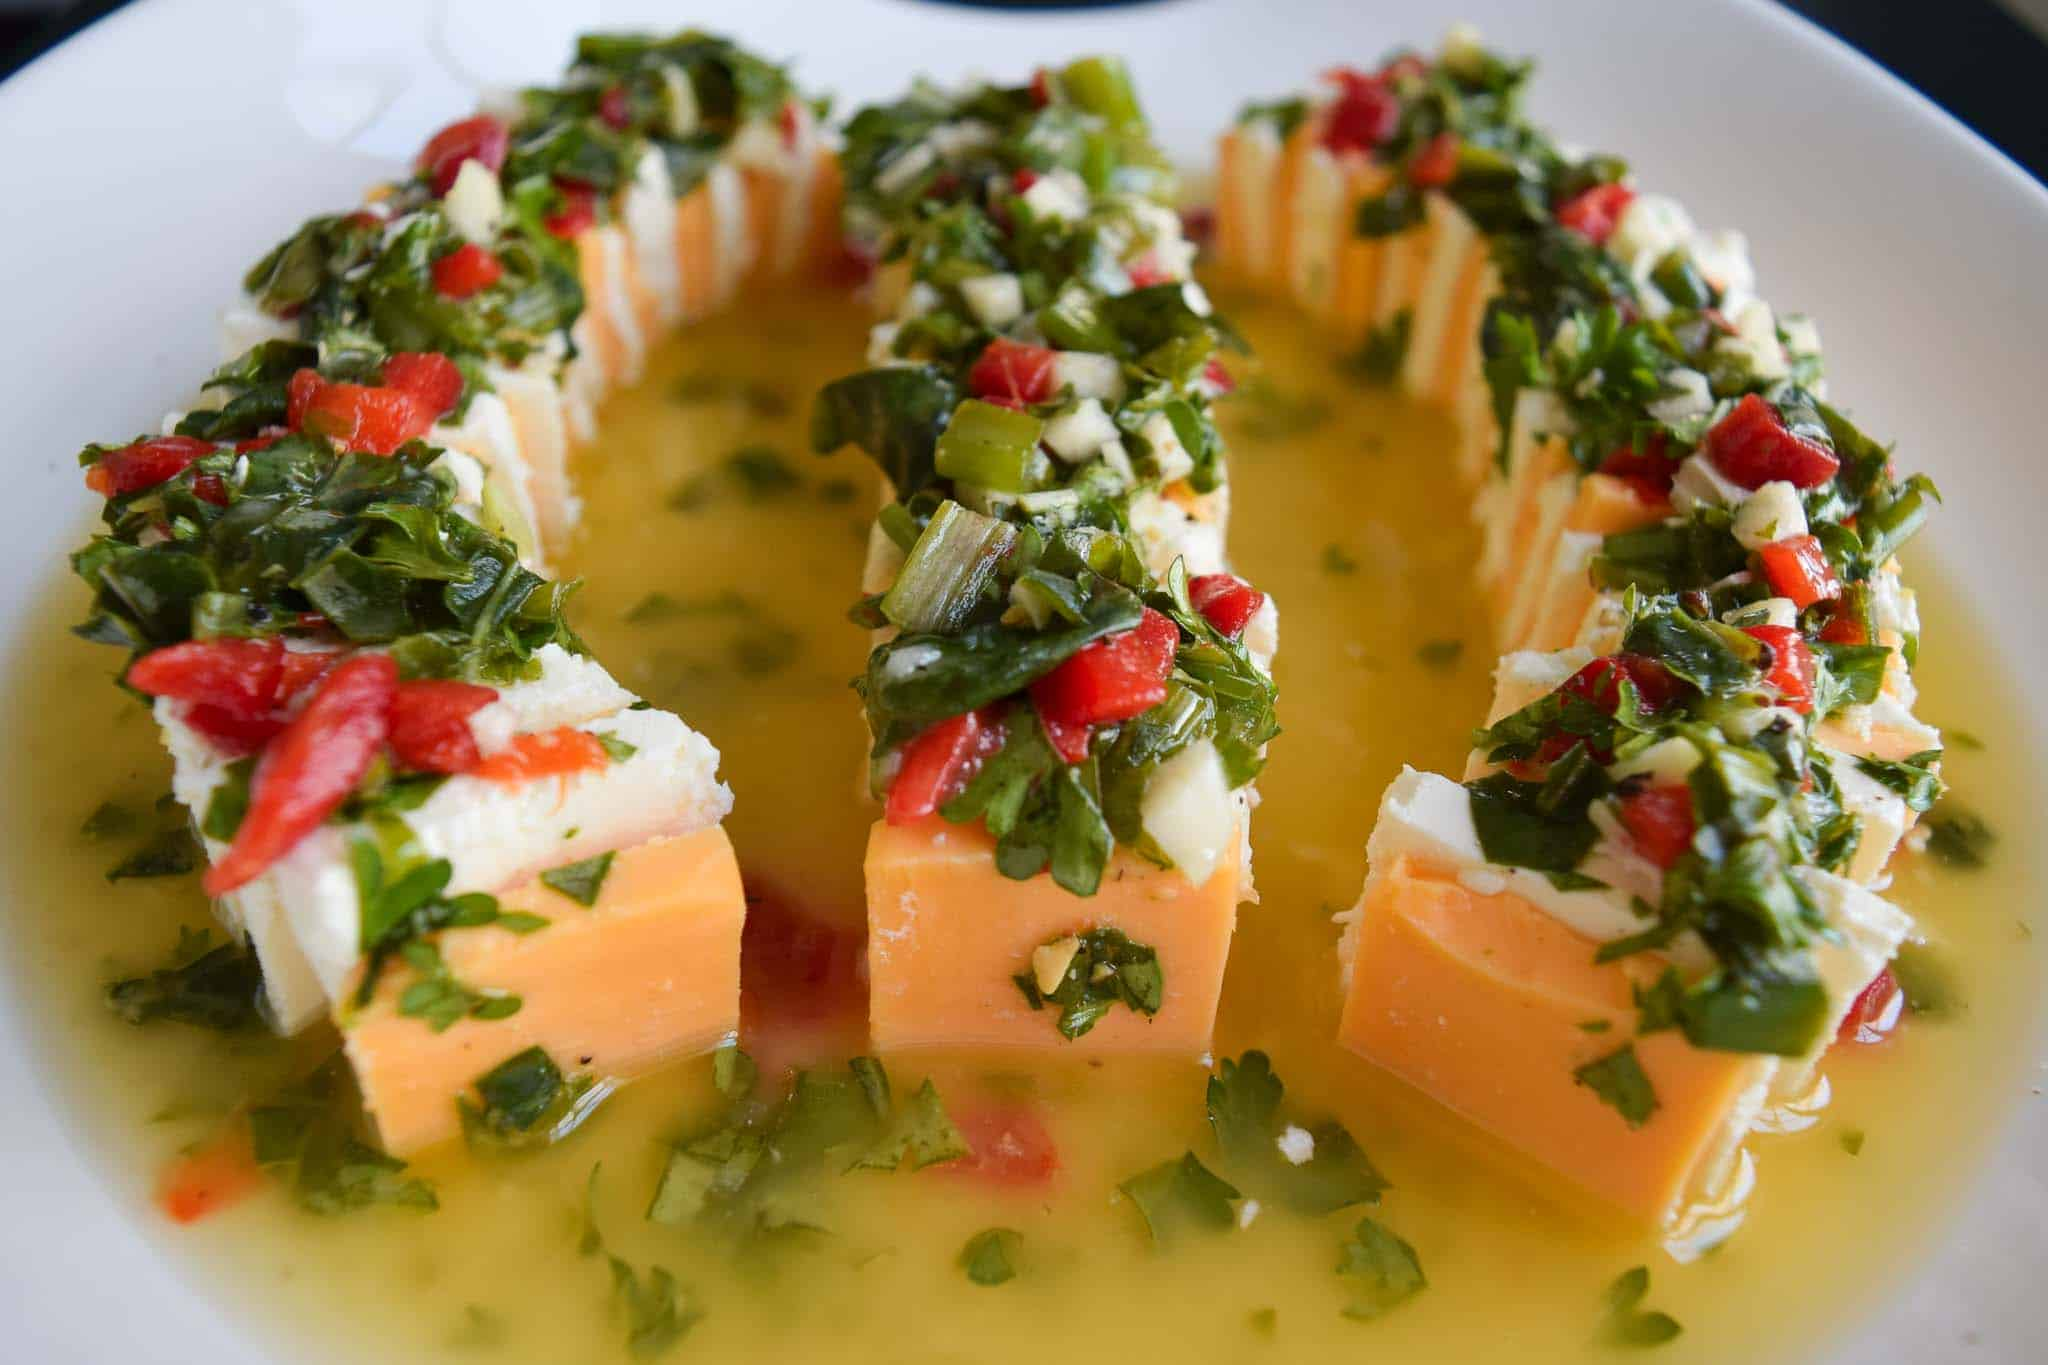 marinated cheese slices sitting in white dish close up view